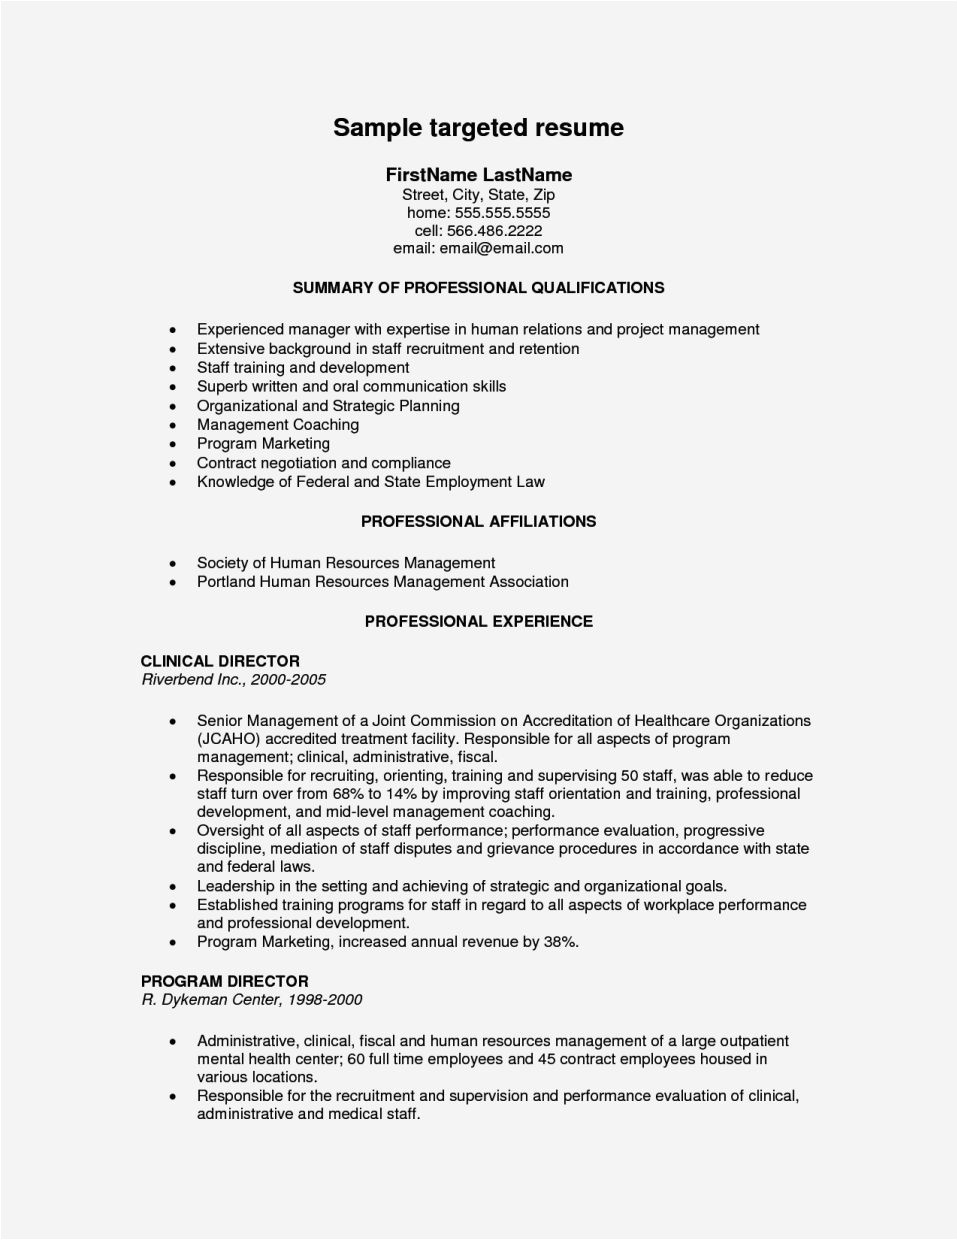 examples of targeted resumes